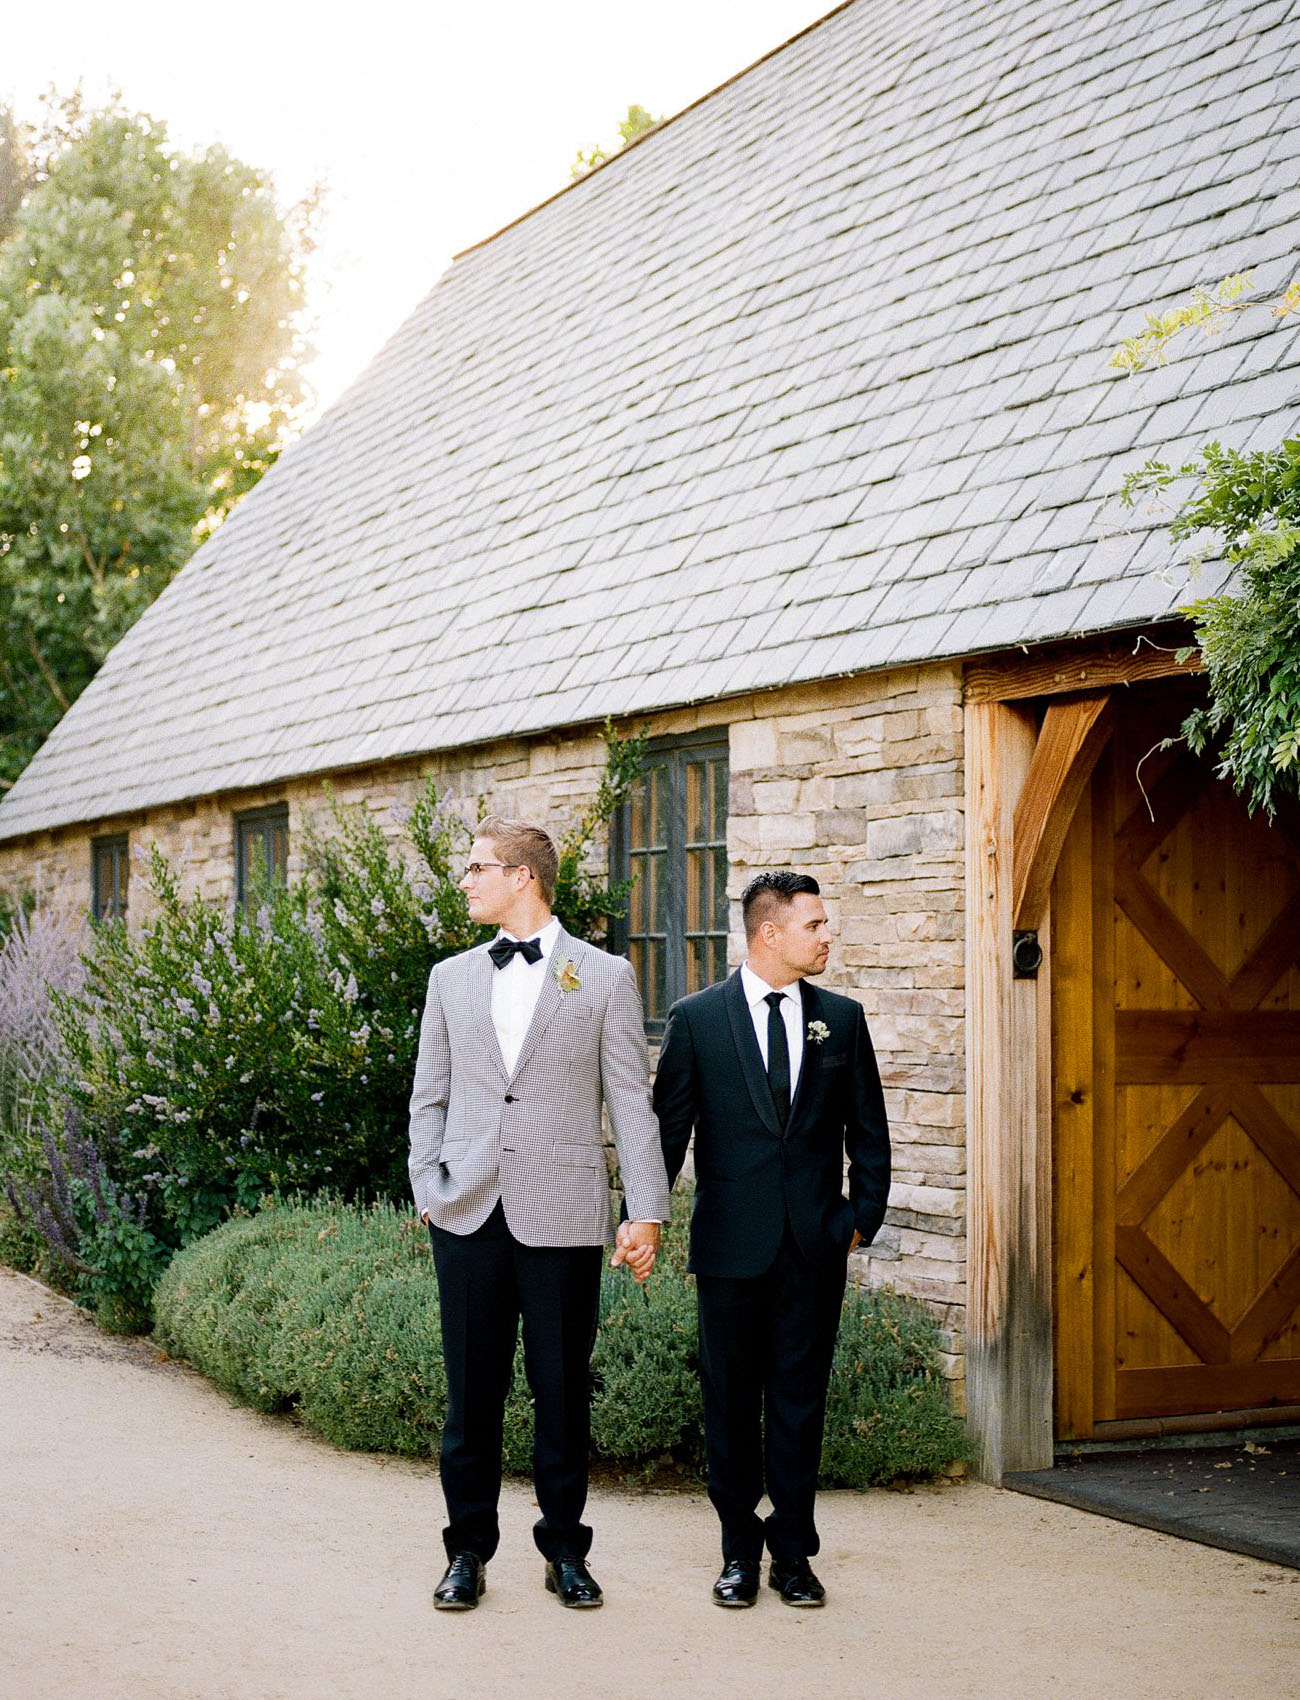 The second groom was wearing a classic black tux with a tie